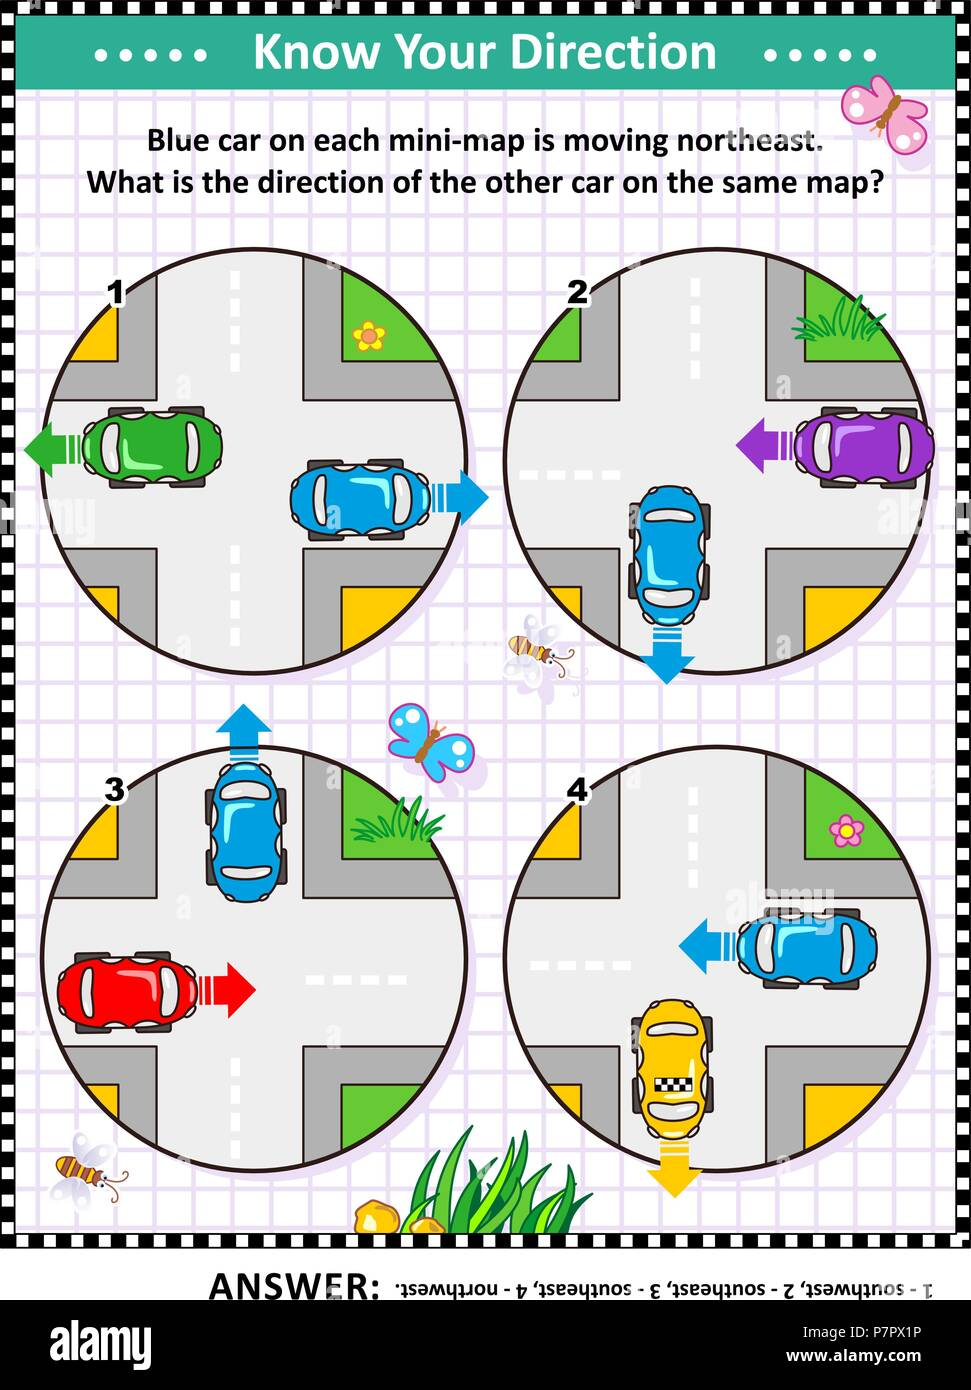 Map skills learning and training activity page or worksheet: Blue car on each mini-map is moving northeast. What is the direction of the other car? - Stock Vector